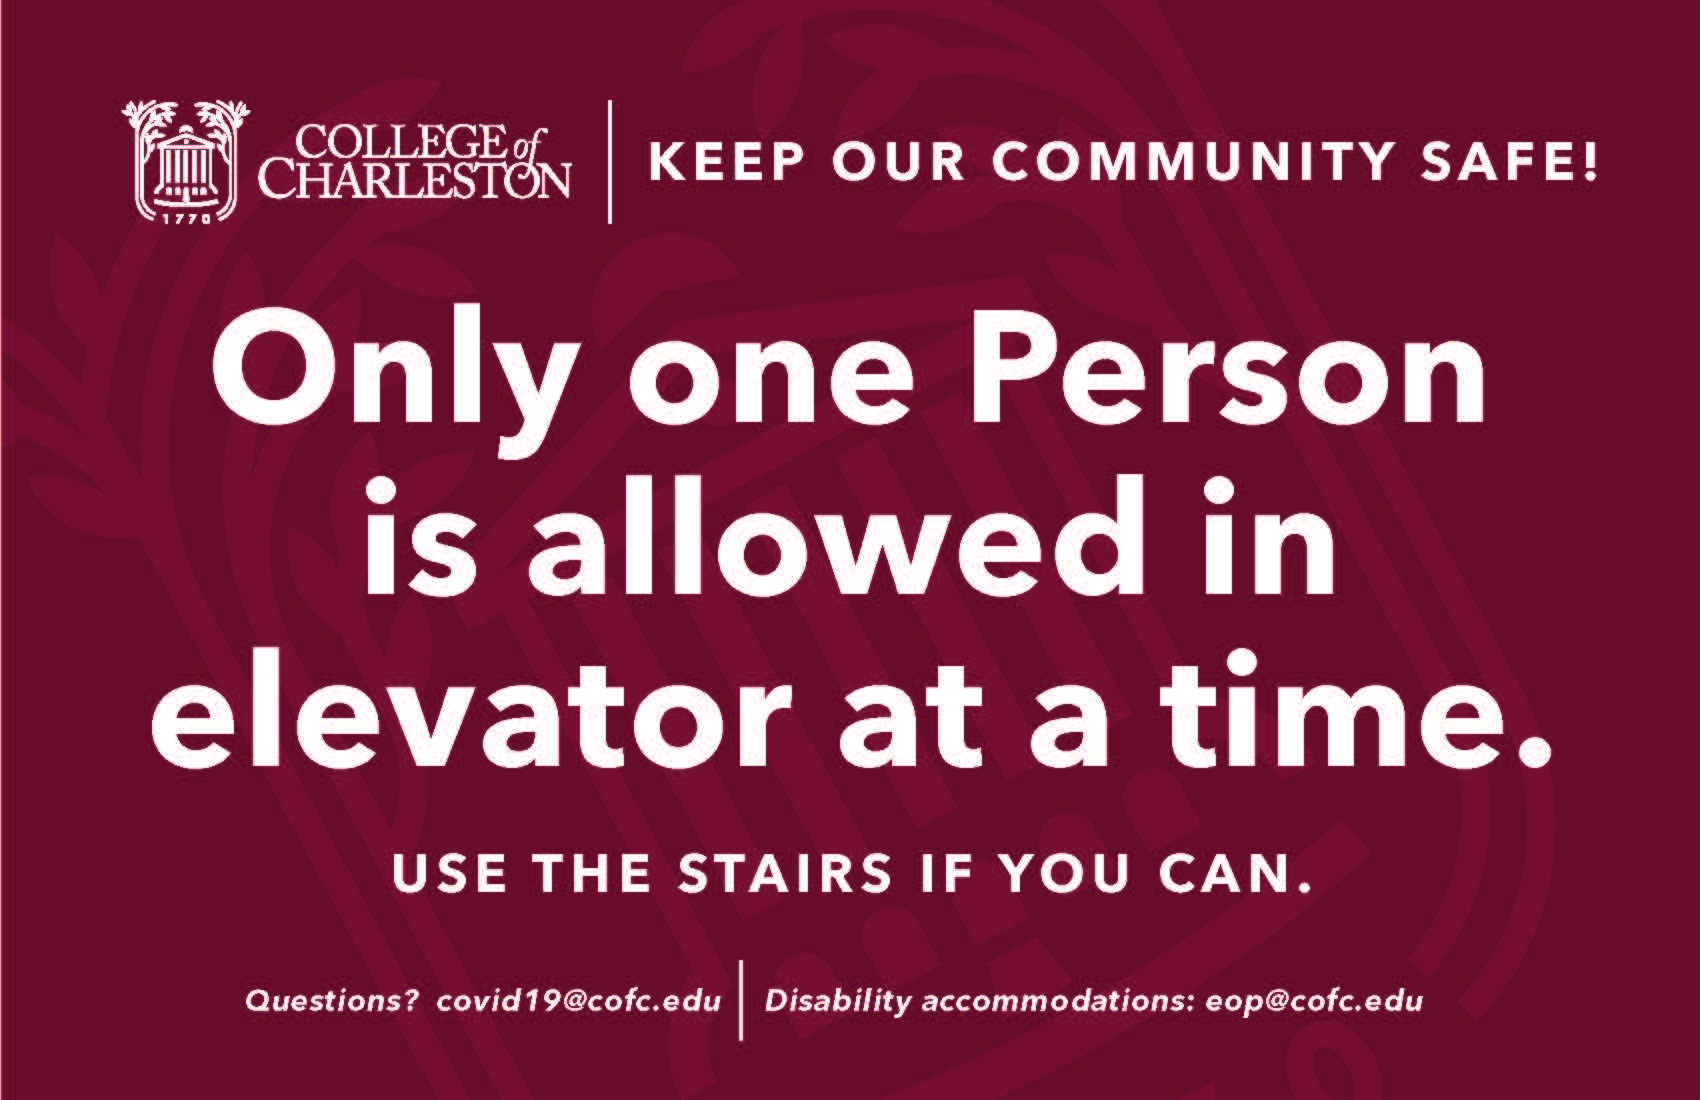 image of signage for one person on elevator only